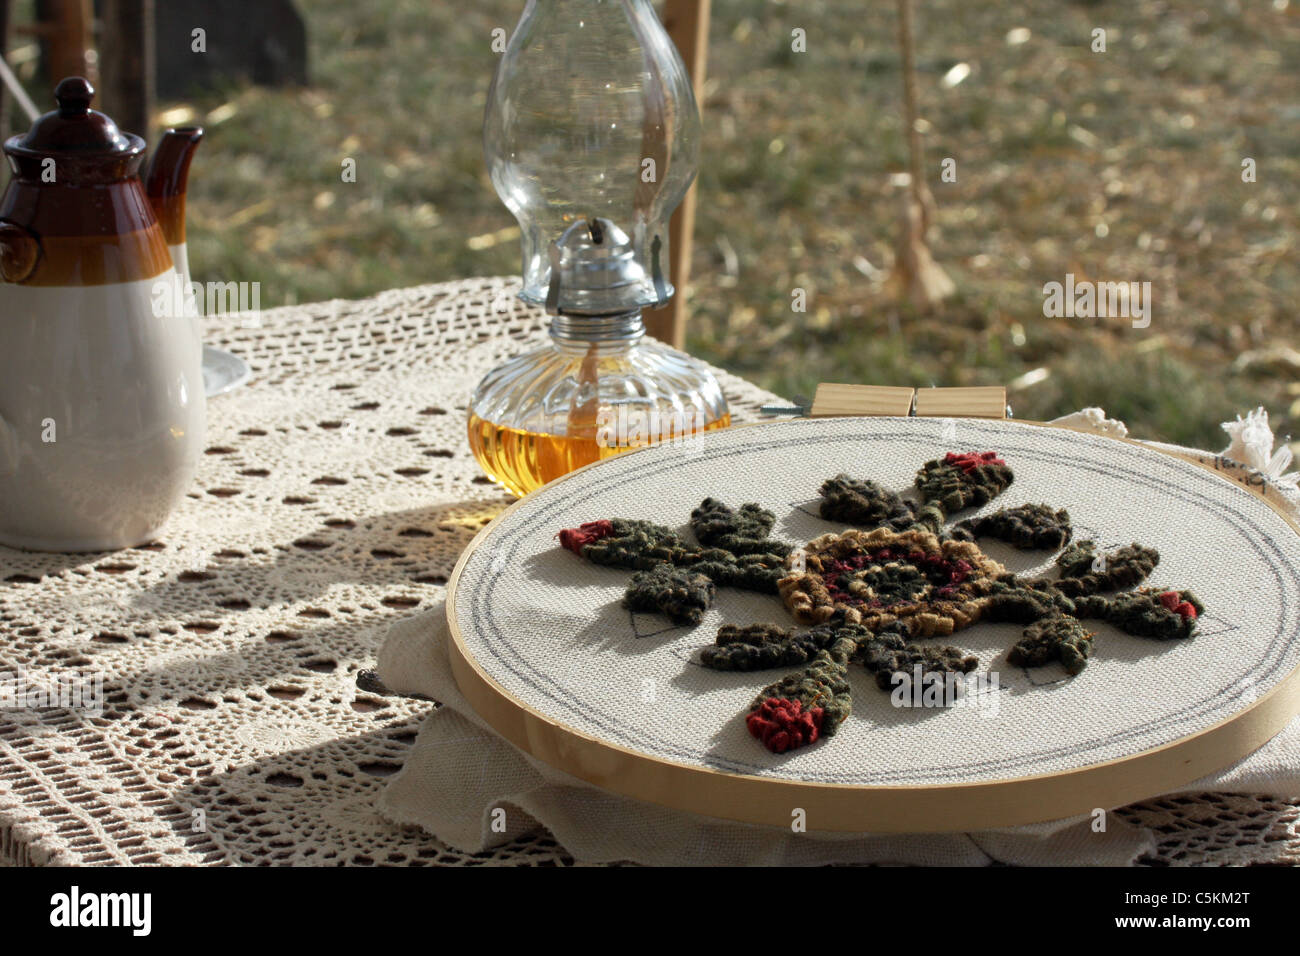 Handmade rugging decoration on a civil war time period next to an oil lamp and water pitcher - Stock Image